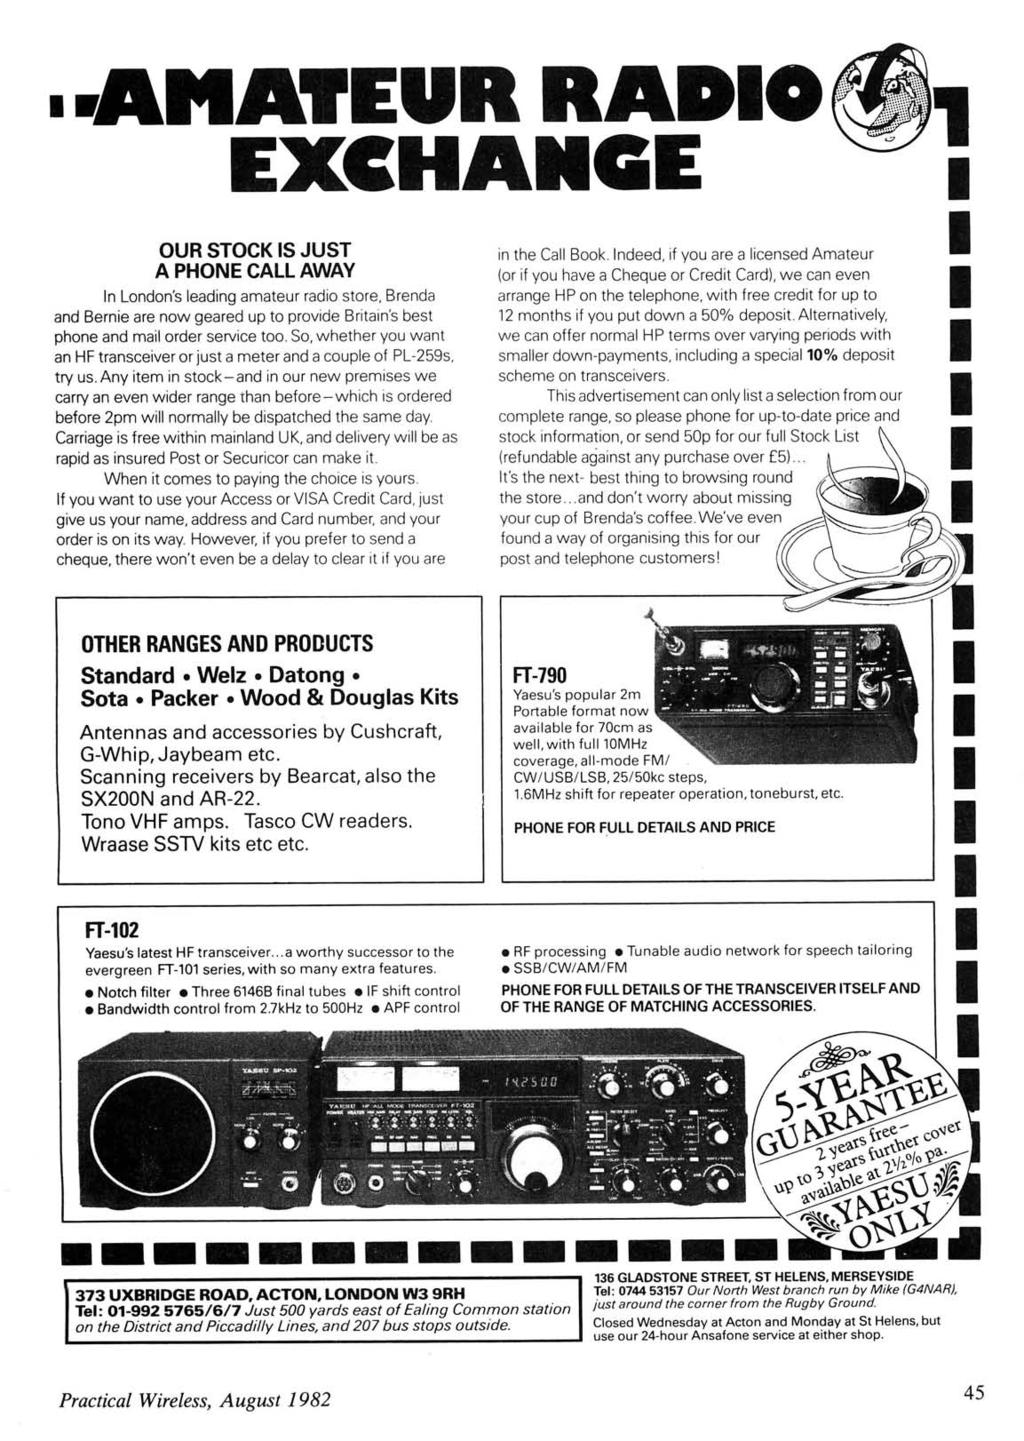 Pdf Audio Gt Filters Automatic Level Control With Ne570 L11794 Americanradiohistorycomaa